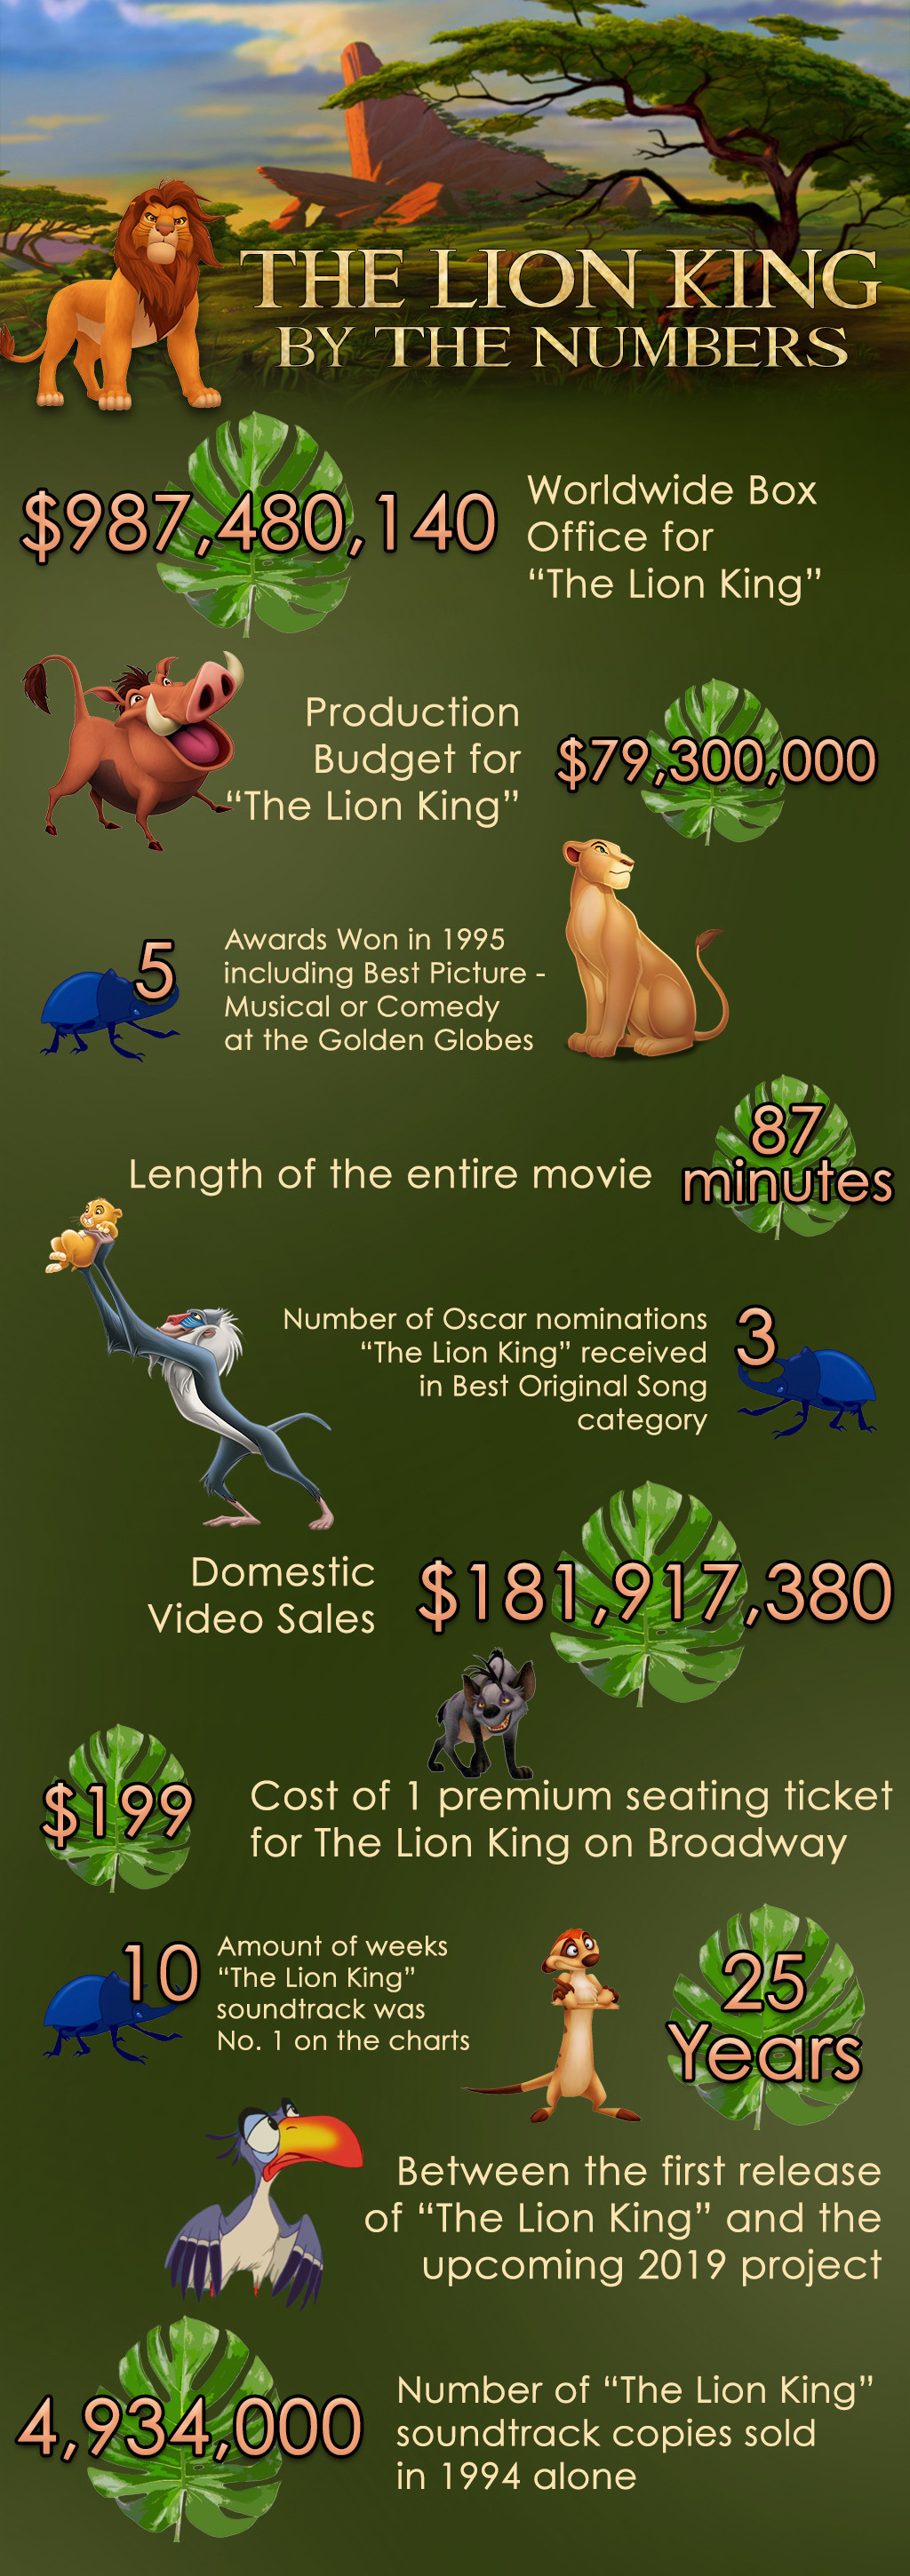 Celebrating Disneys The Lion King By The Numbers E News